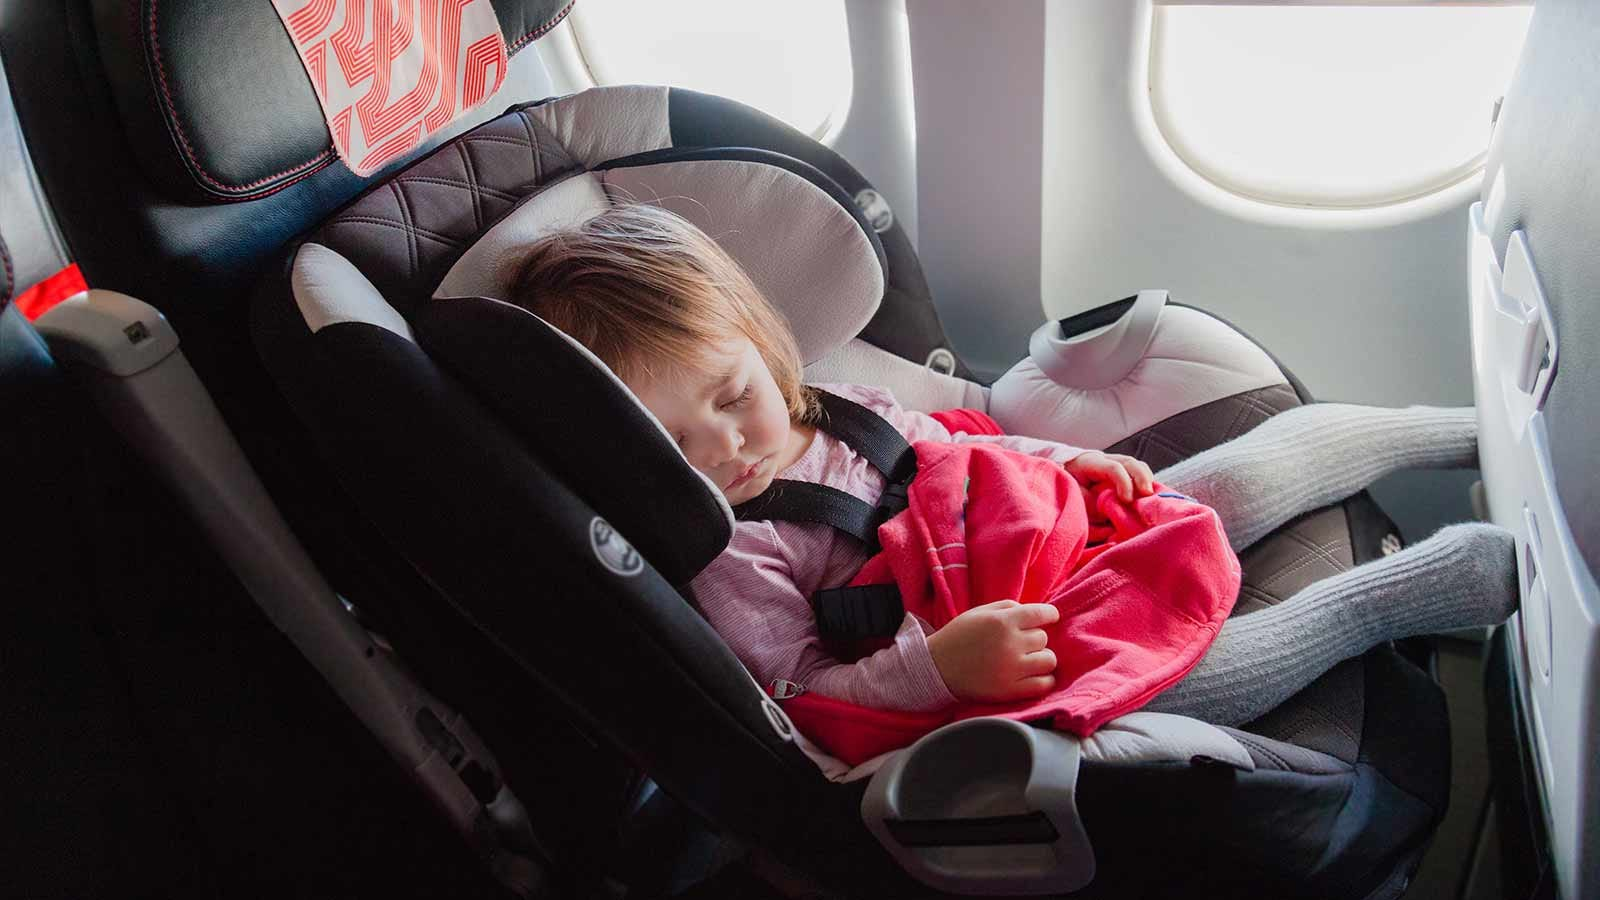 A toddler sleeping in a forward-facing car seat in a window seat on a plane.